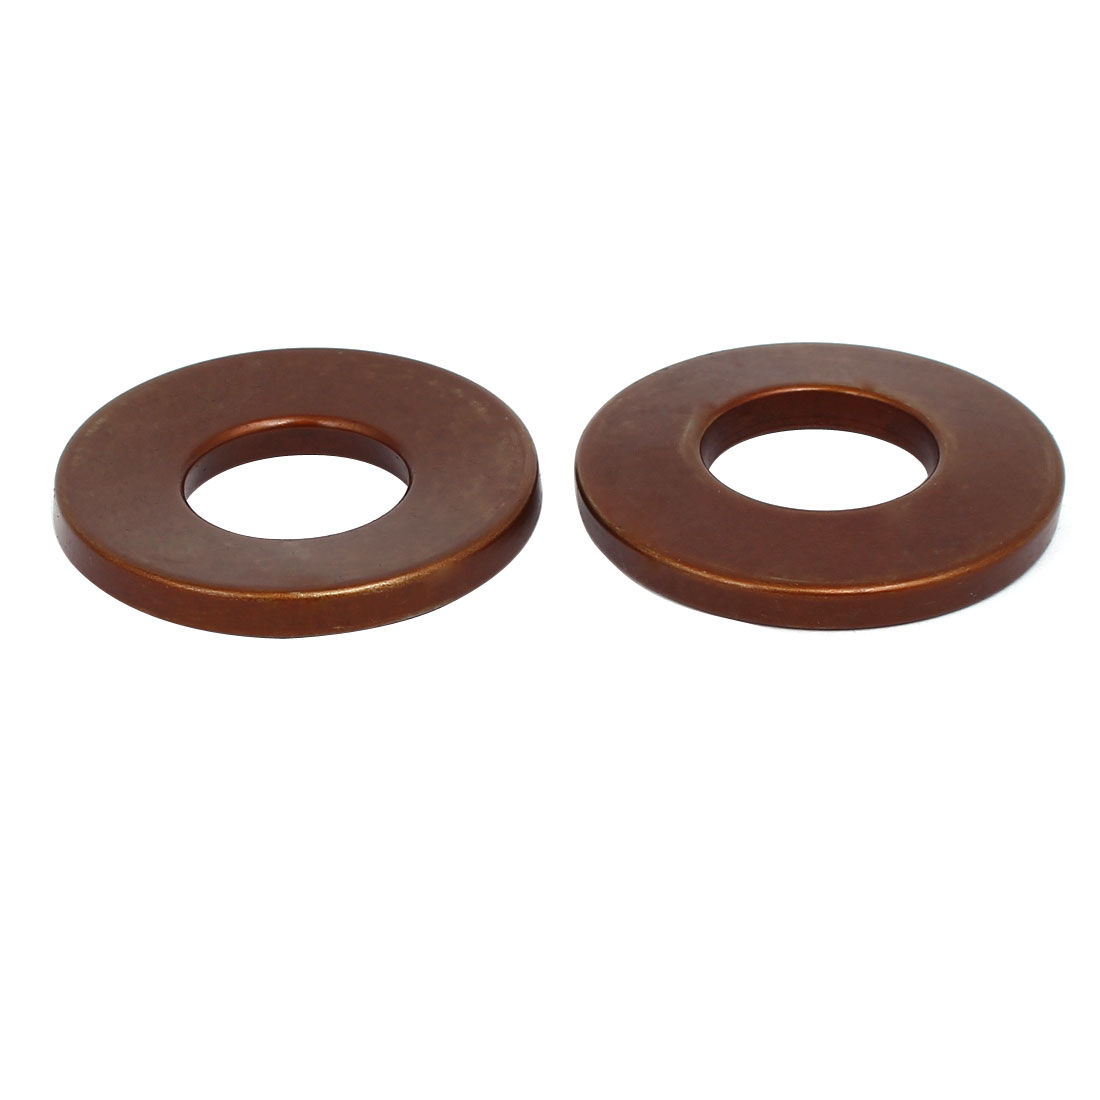 56mm Outer Dia 25mm Inner Dia 6mm Thickness Metric Belleville Spring Washer 2pcs